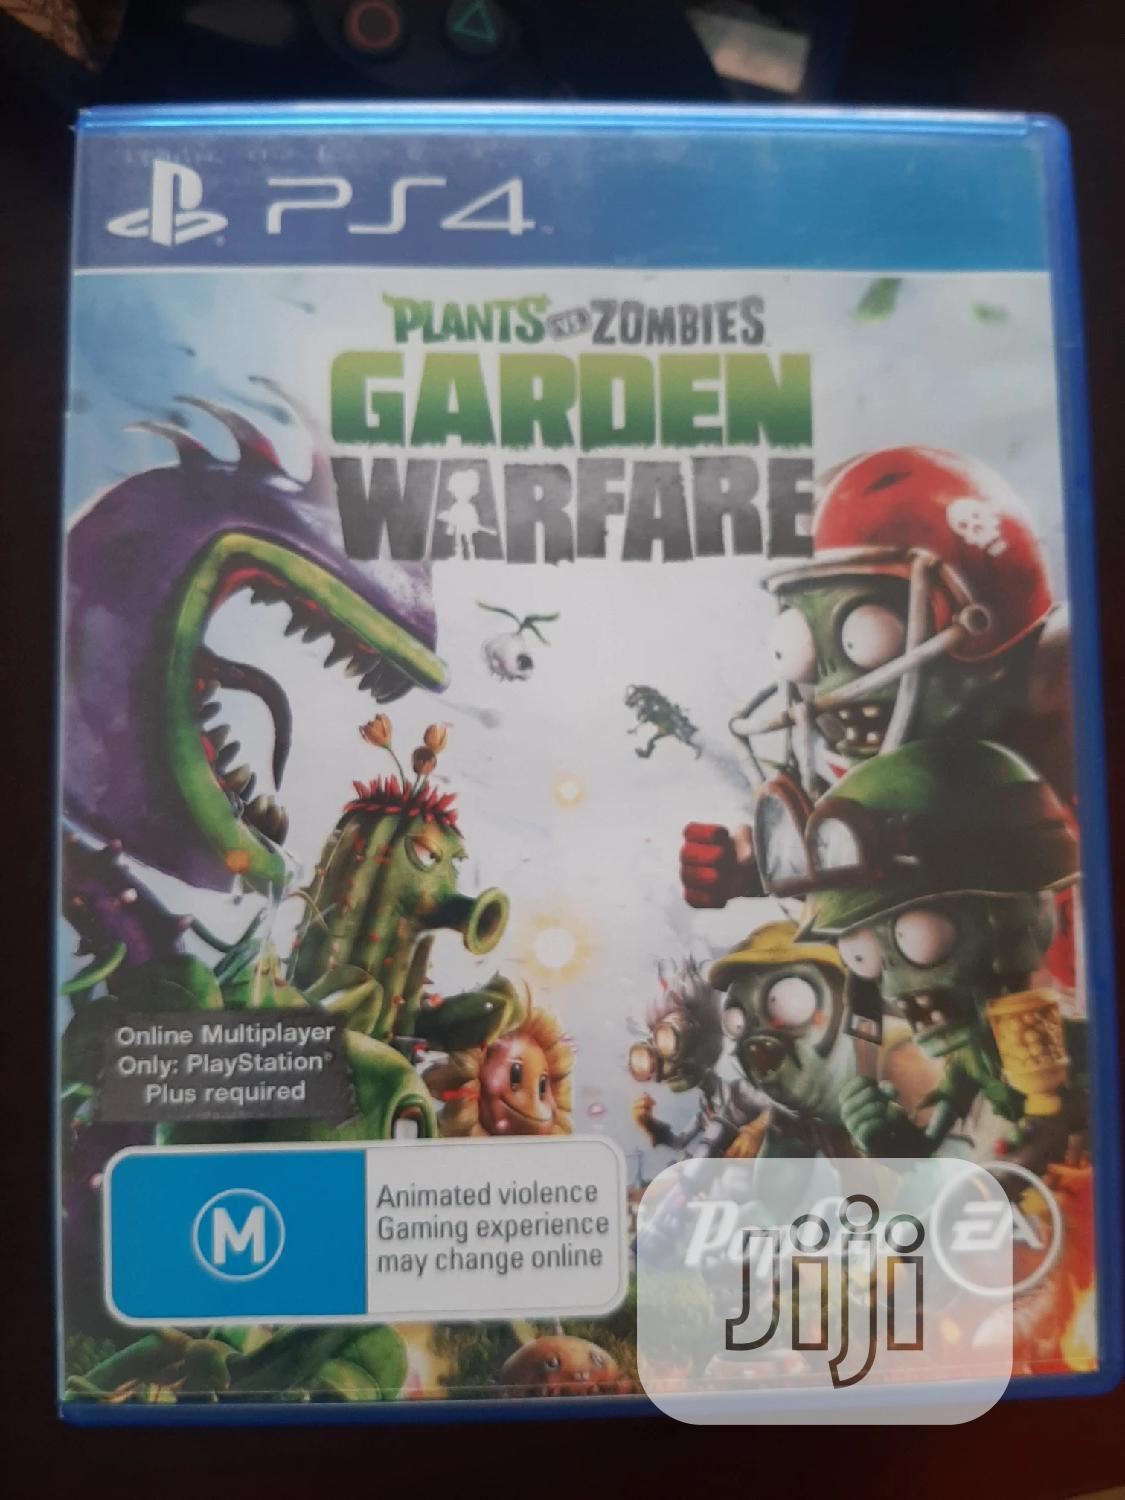 PS4 Plant vs Zmobia Garden Warfare | Video Games for sale in Ikeja, Lagos State, Nigeria